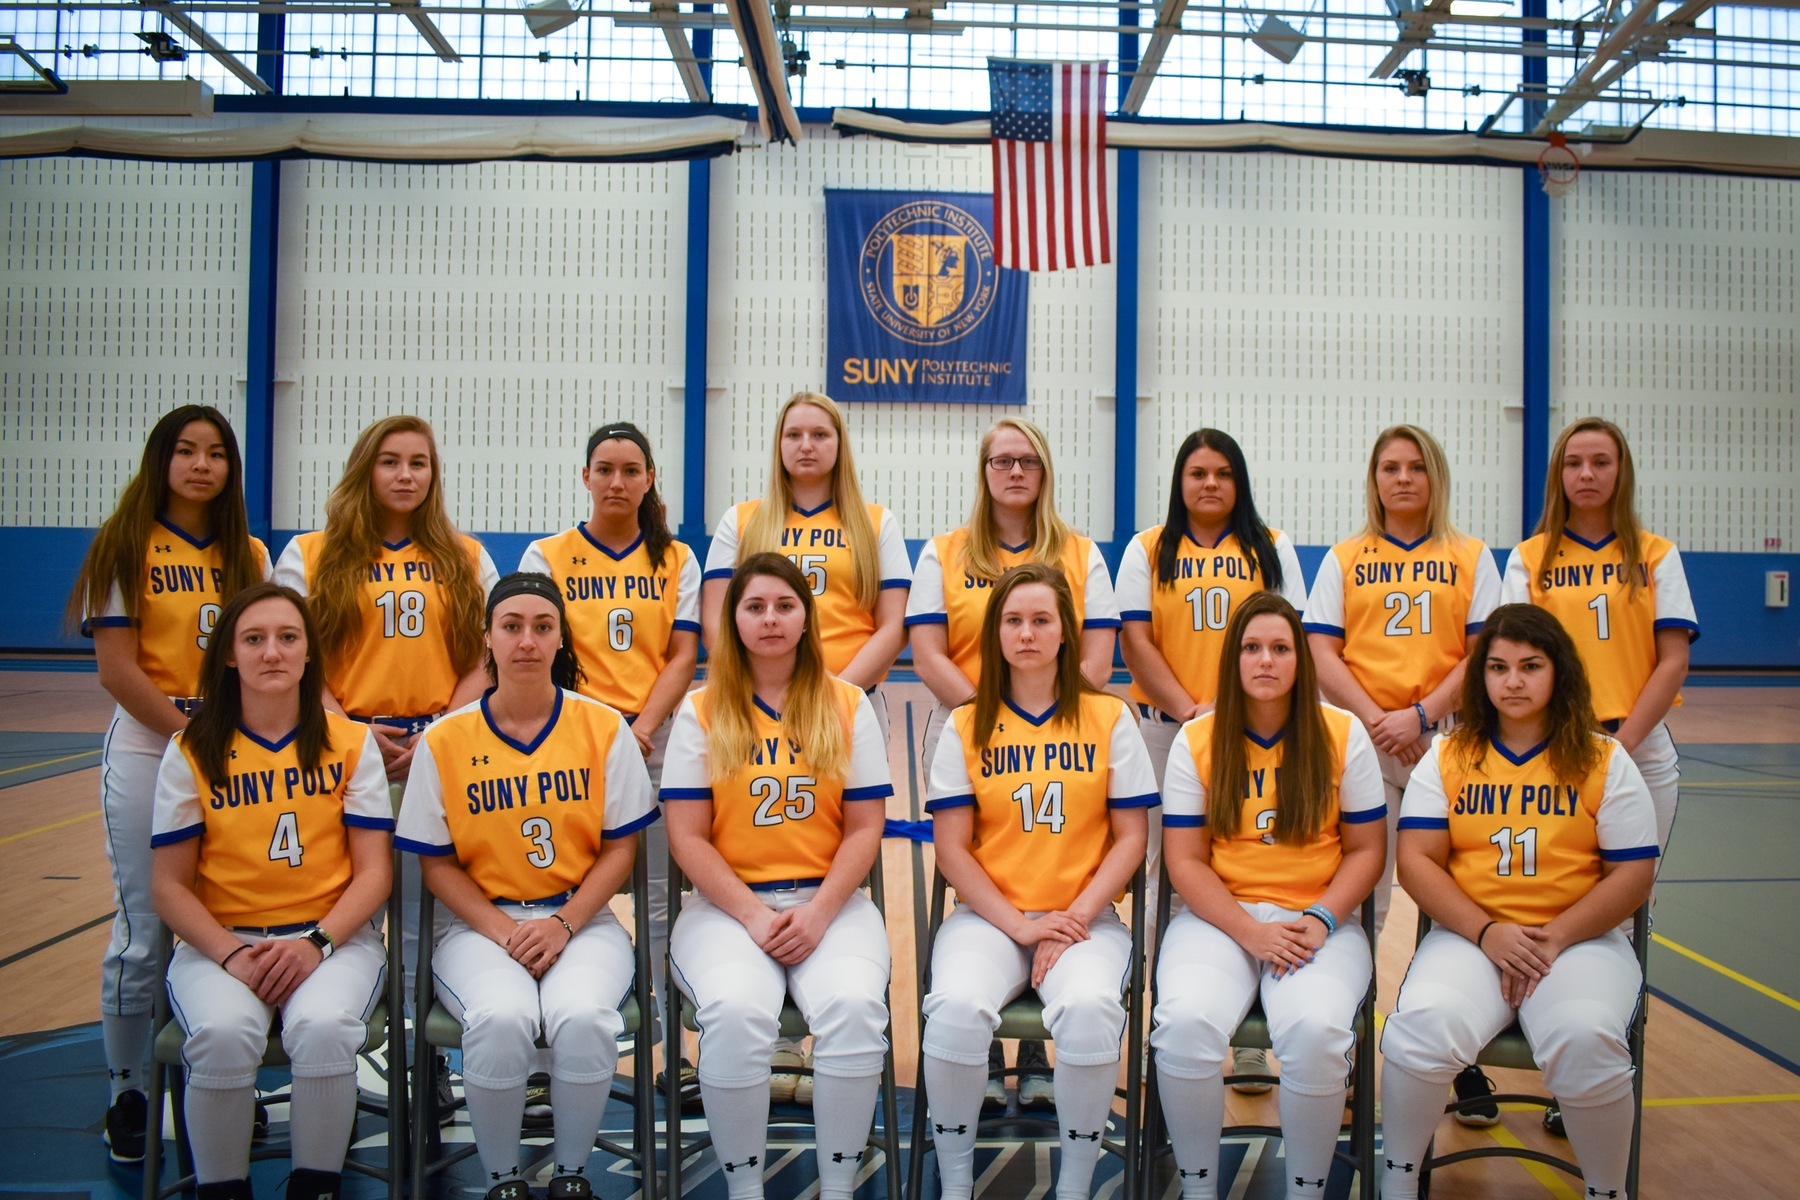 SB: Wildcat Season Comes to an End in the First Round of the NEAC Post Season.